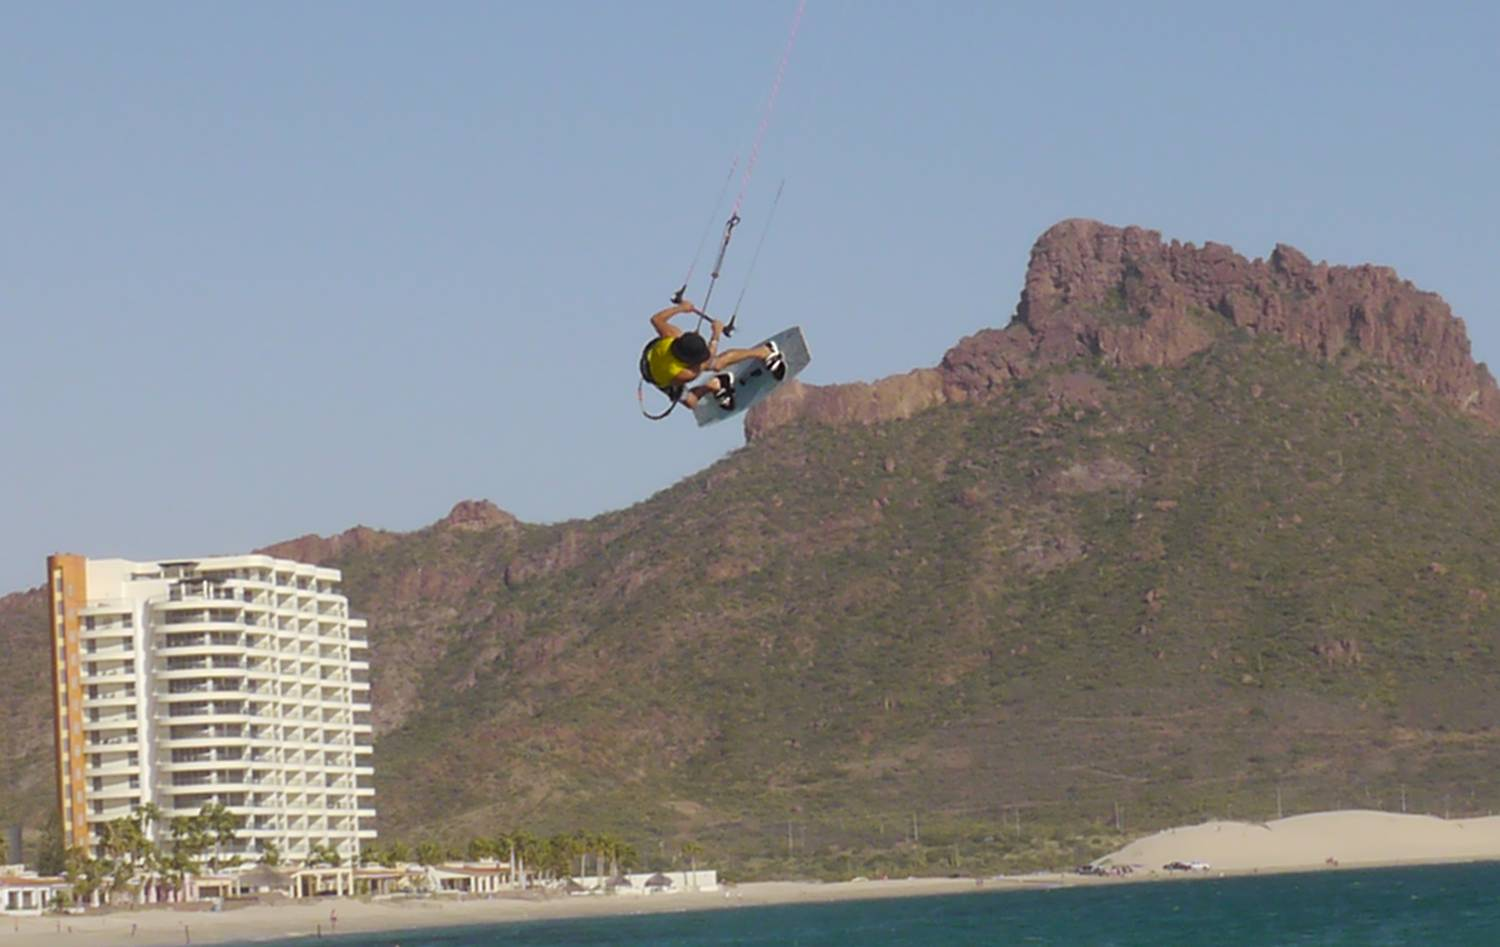 October winds mean Kiteboarding in San Carlos at Algodones Beach!